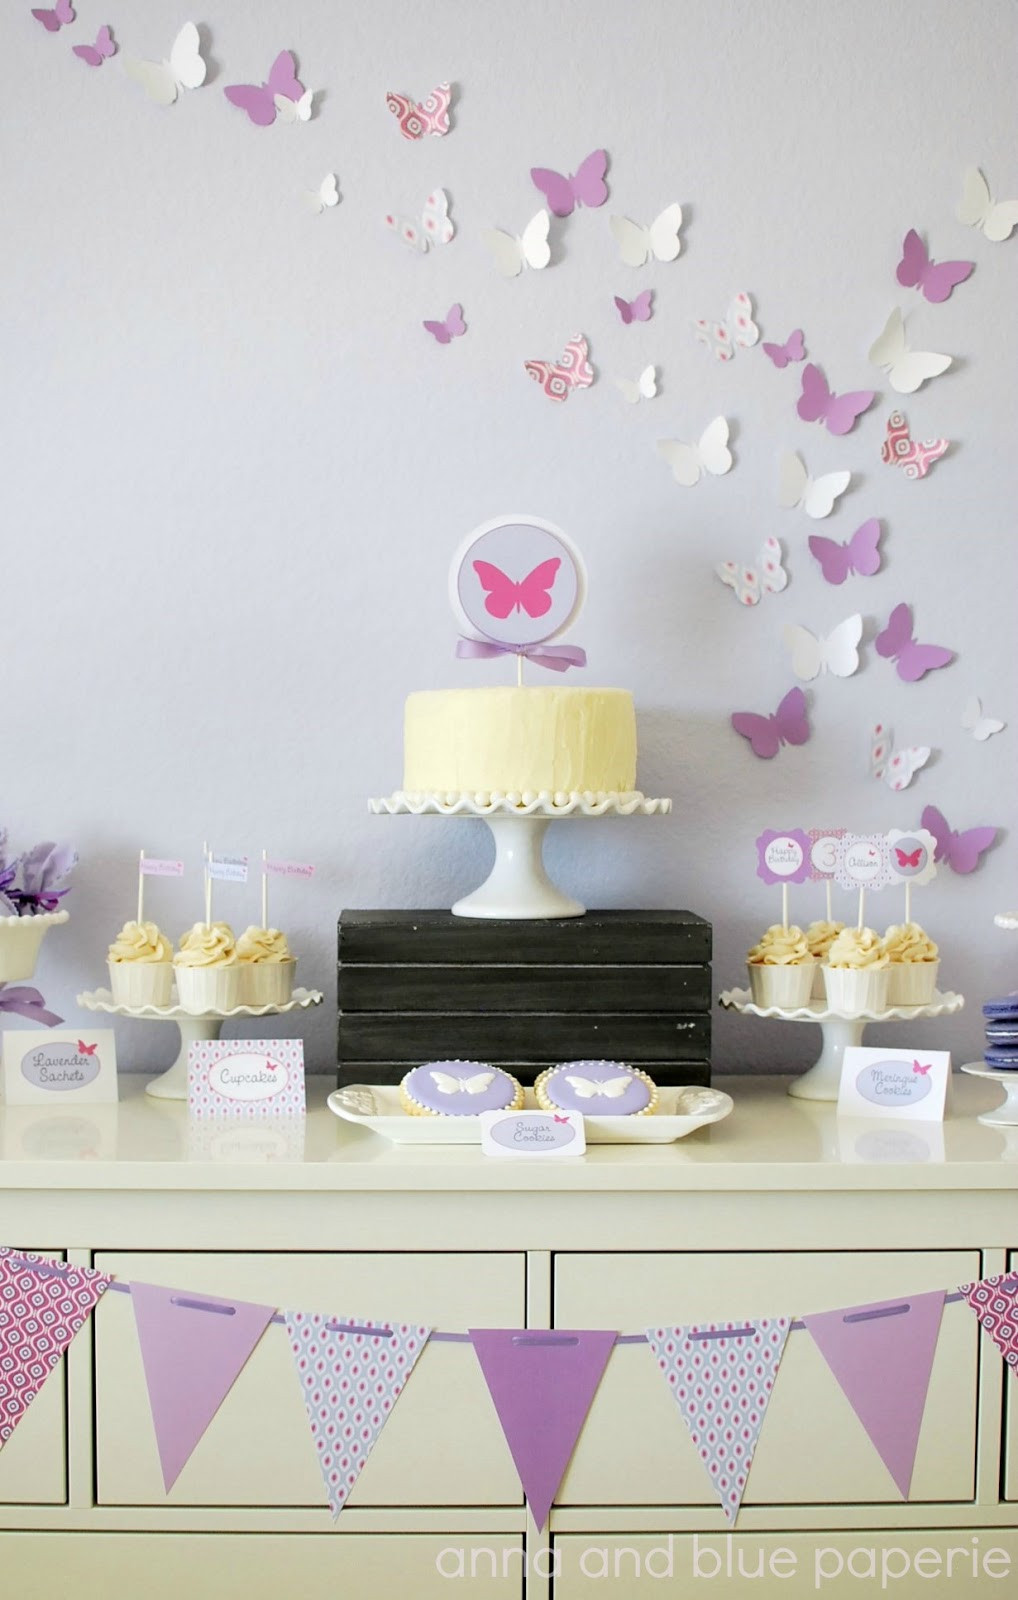 Best ideas about Butterfly Birthday Party Decorations . Save or Pin anna and blue paperie New to the Shop Butterfly Party Now.